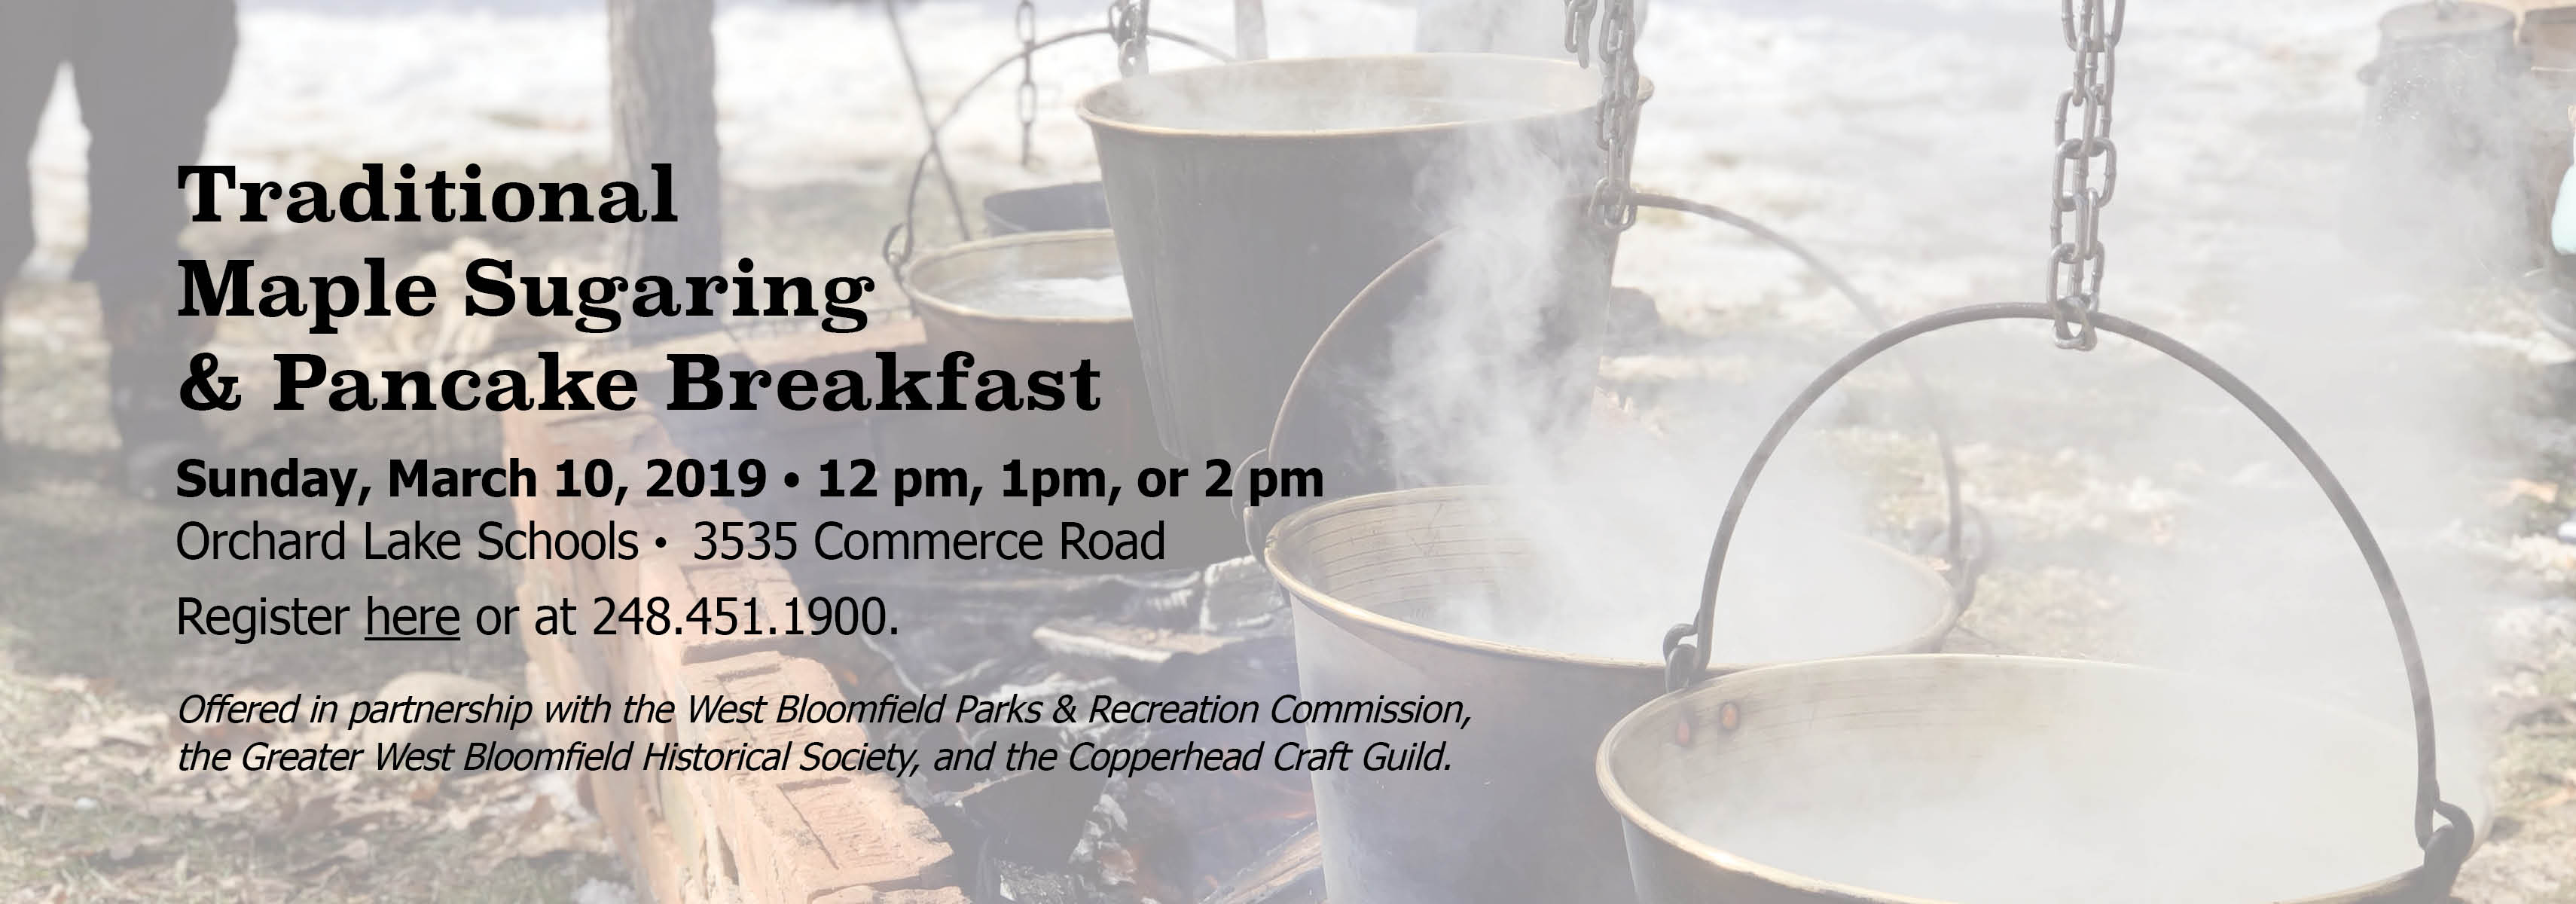 Traditional Maple Sugaring & Pancake Breakfast